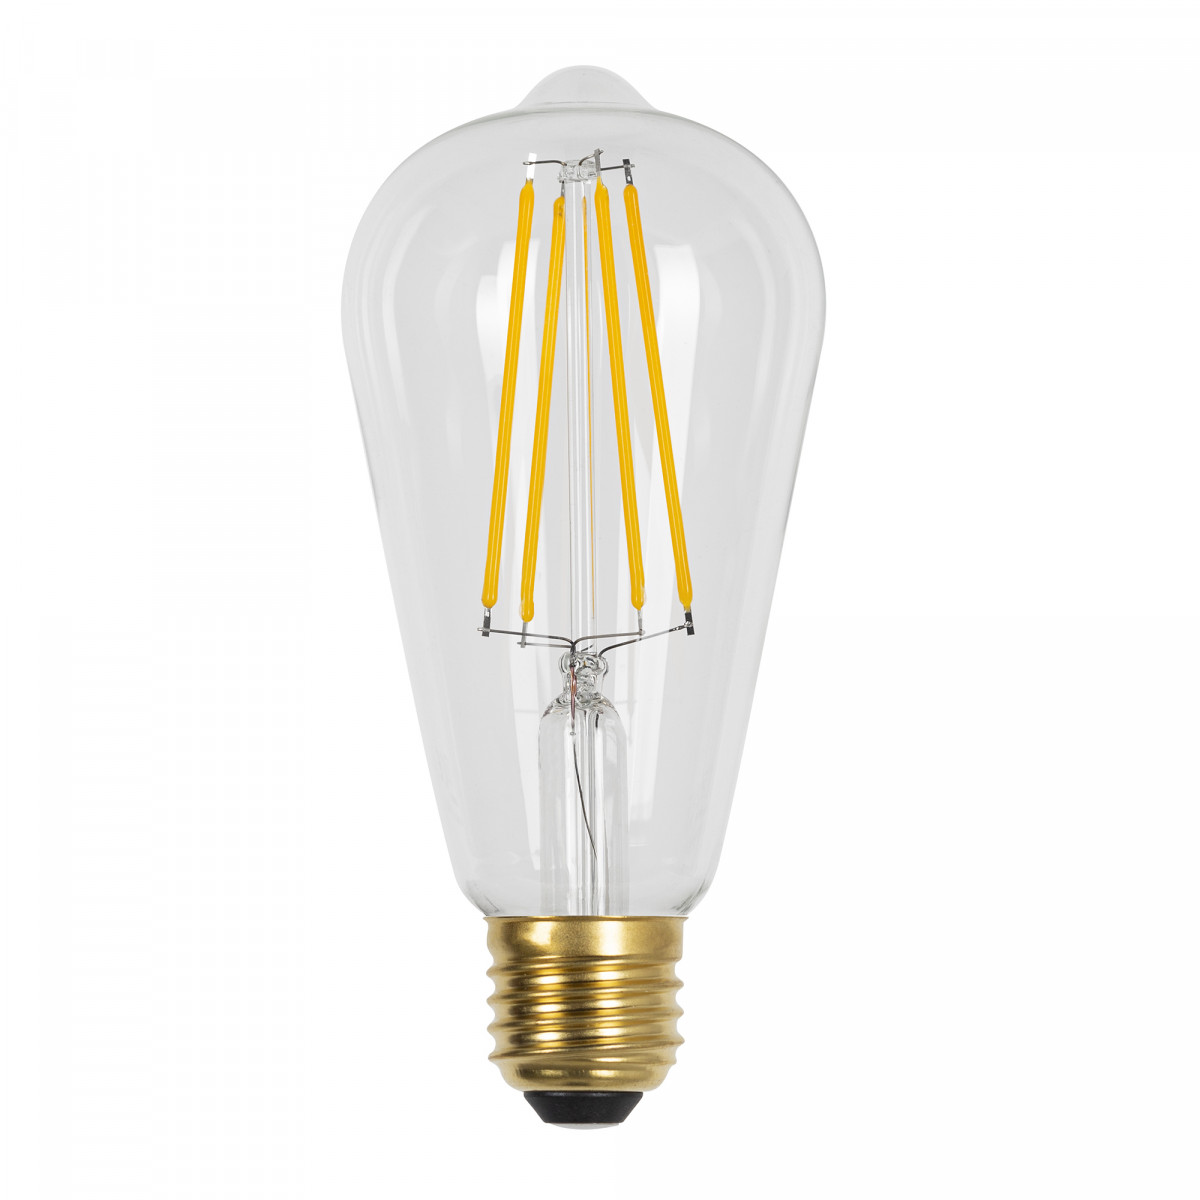 Sensor LED Edison Lamp 3W